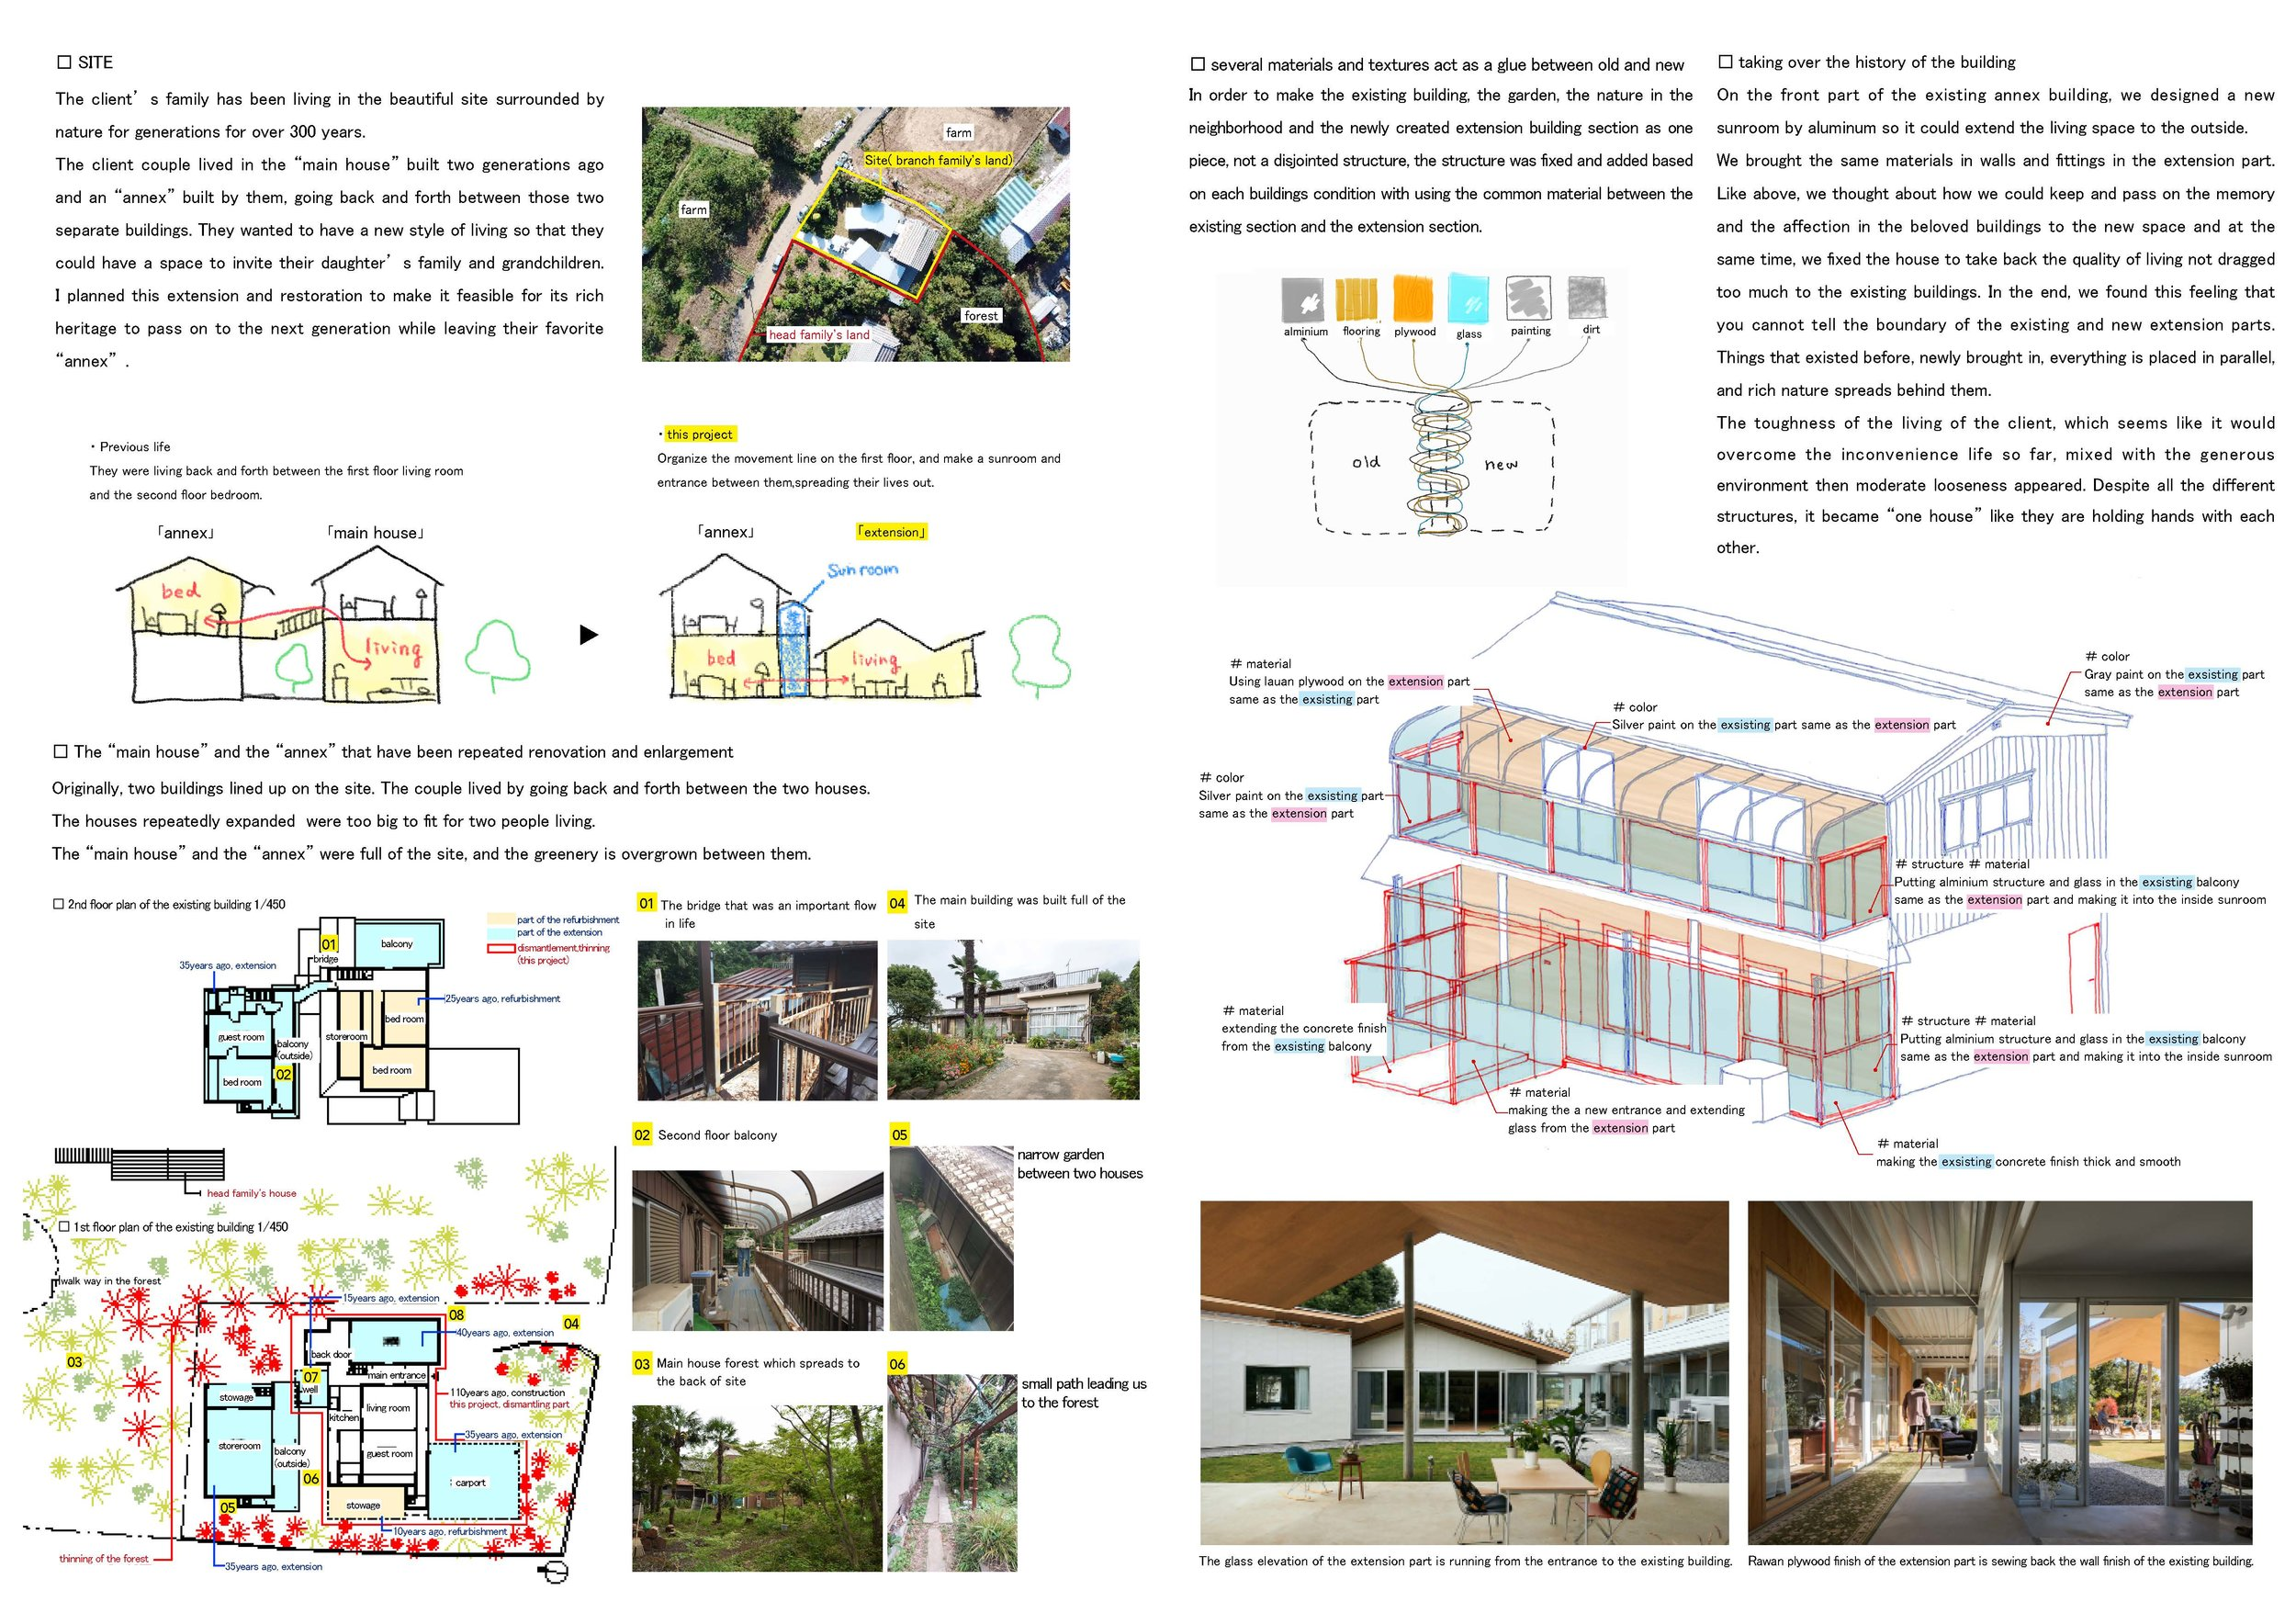 Project Name: Higashimatsuya-ma House - Design by: Kohei Kudo & AssociatesArchitecture Division: ResidentialWebsite: http://koheykudo.com/